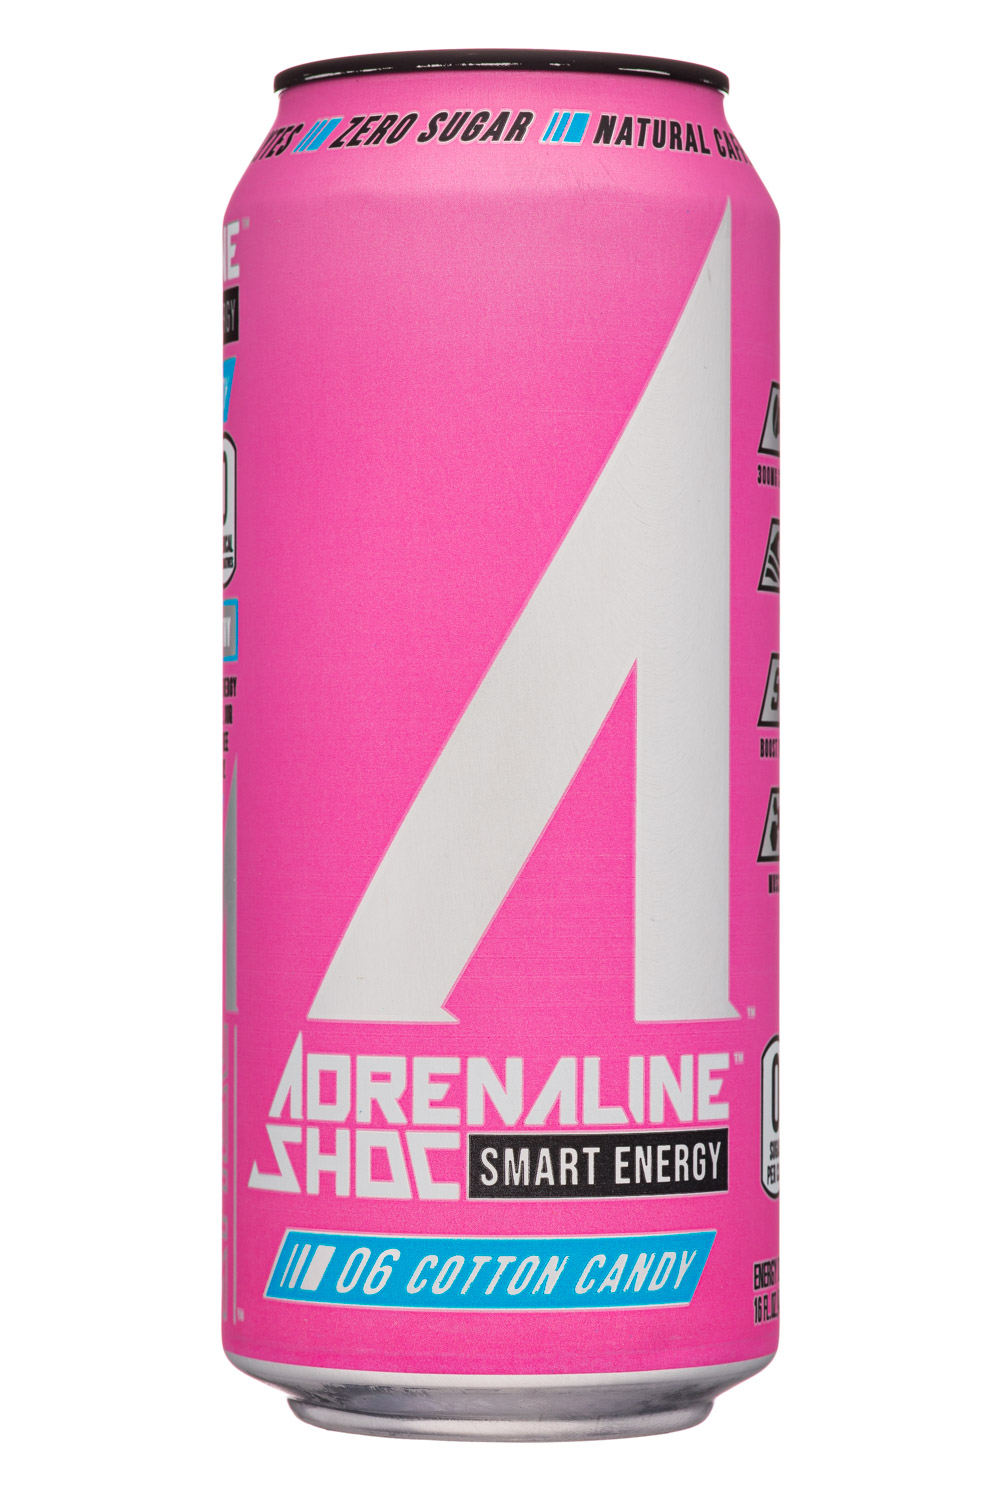 Adrenaline Shoc - 06 Cotton Candy